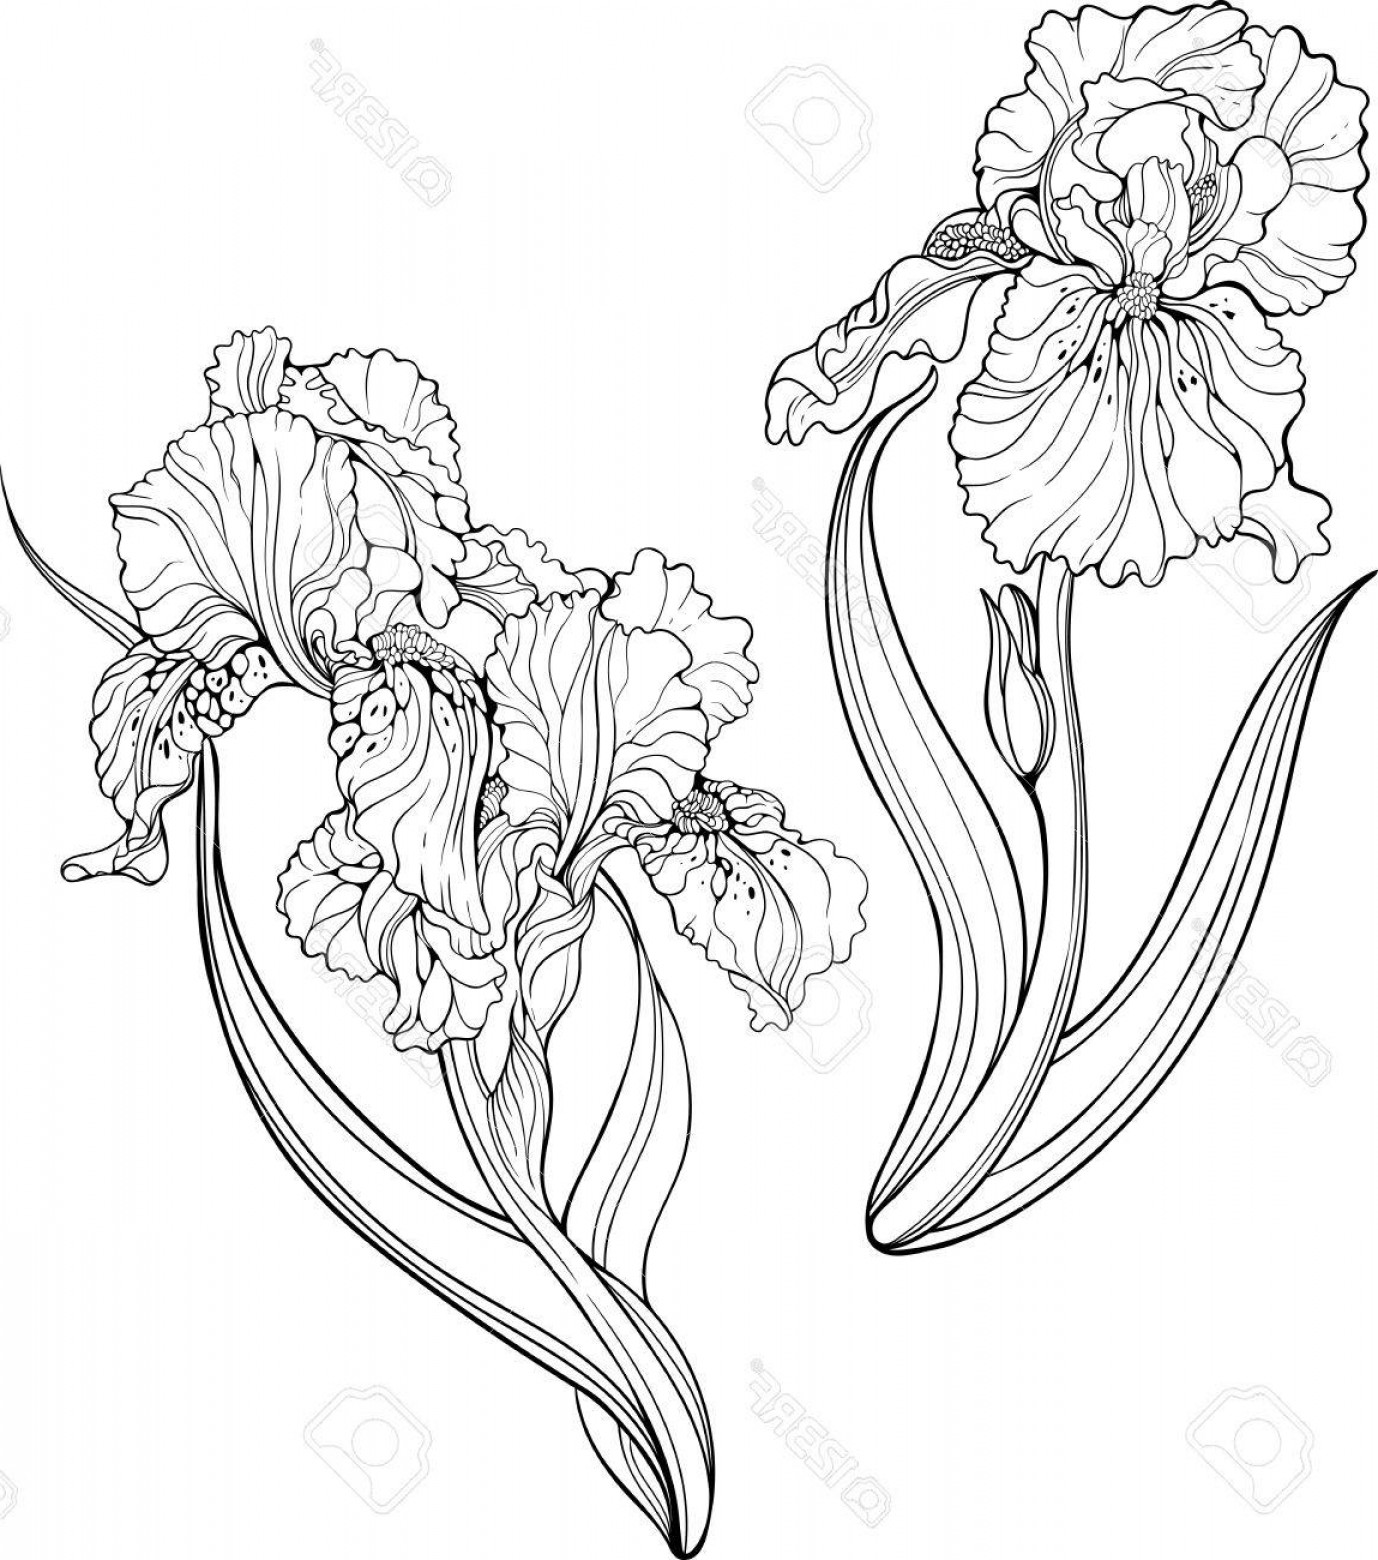 Iris Vector Art: Photostock Vector Two Isolated Black And White Iris Flowers Coloring Page